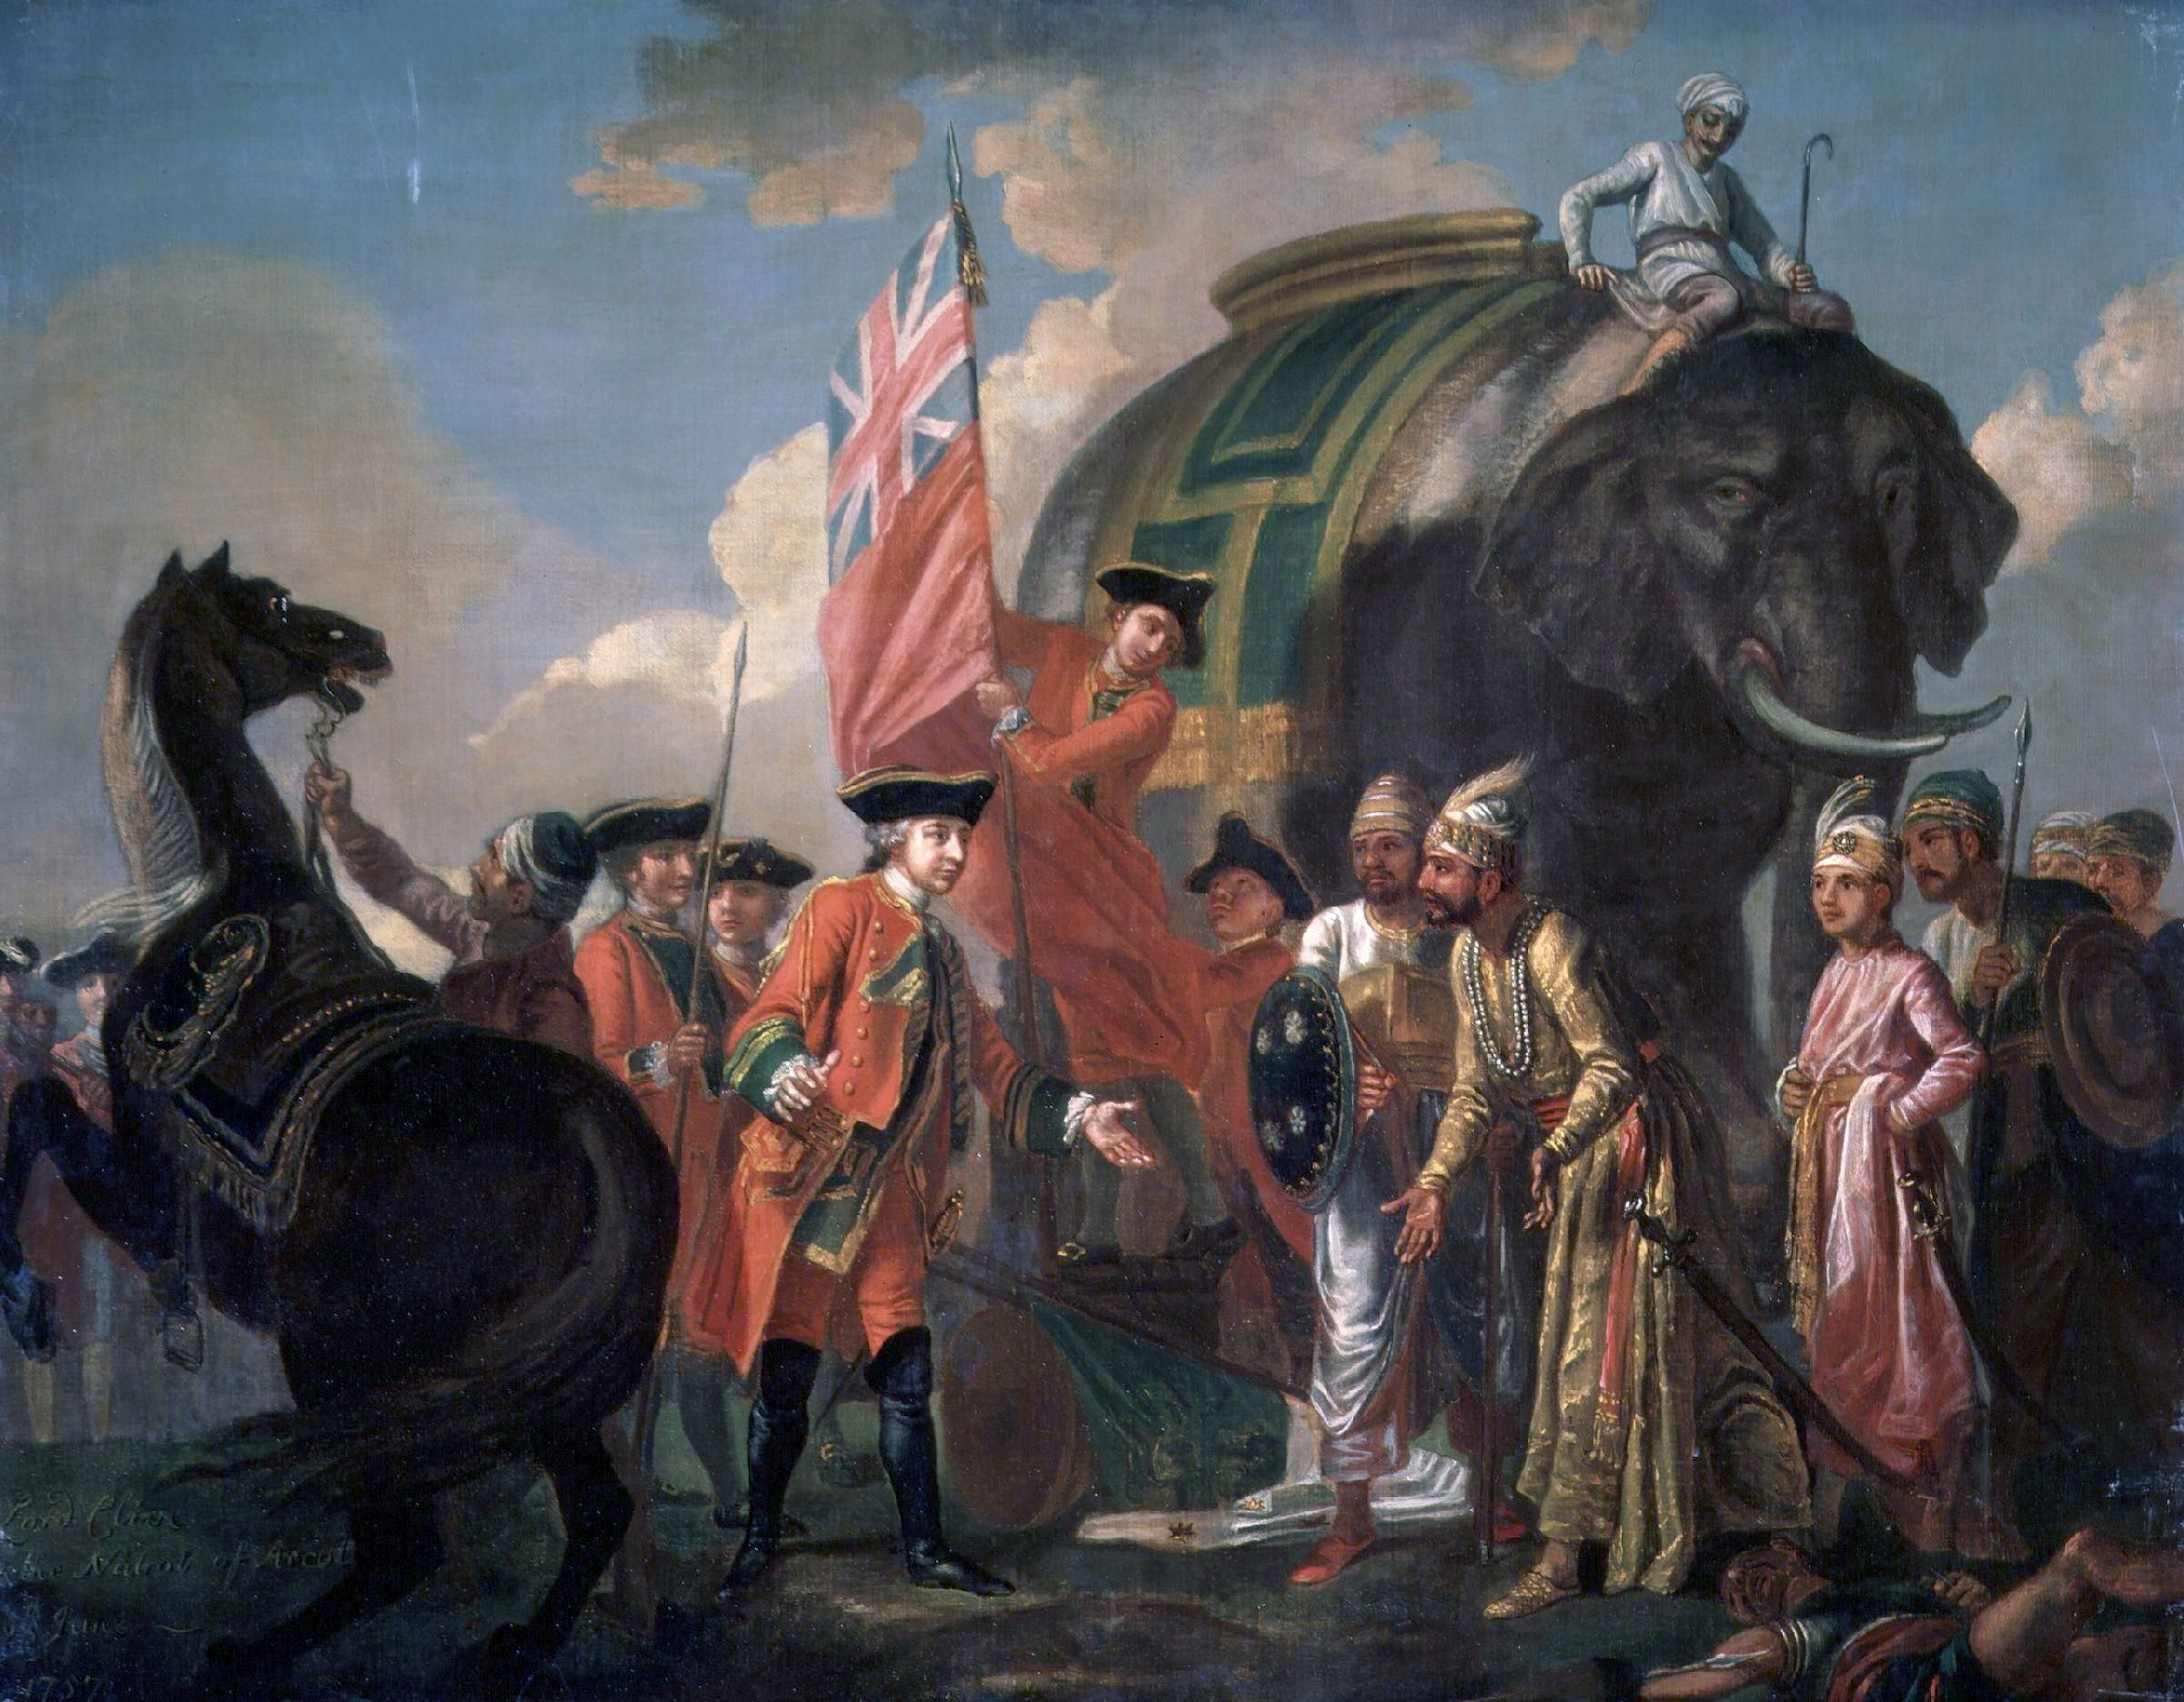 Bad company – how Britain conquered India